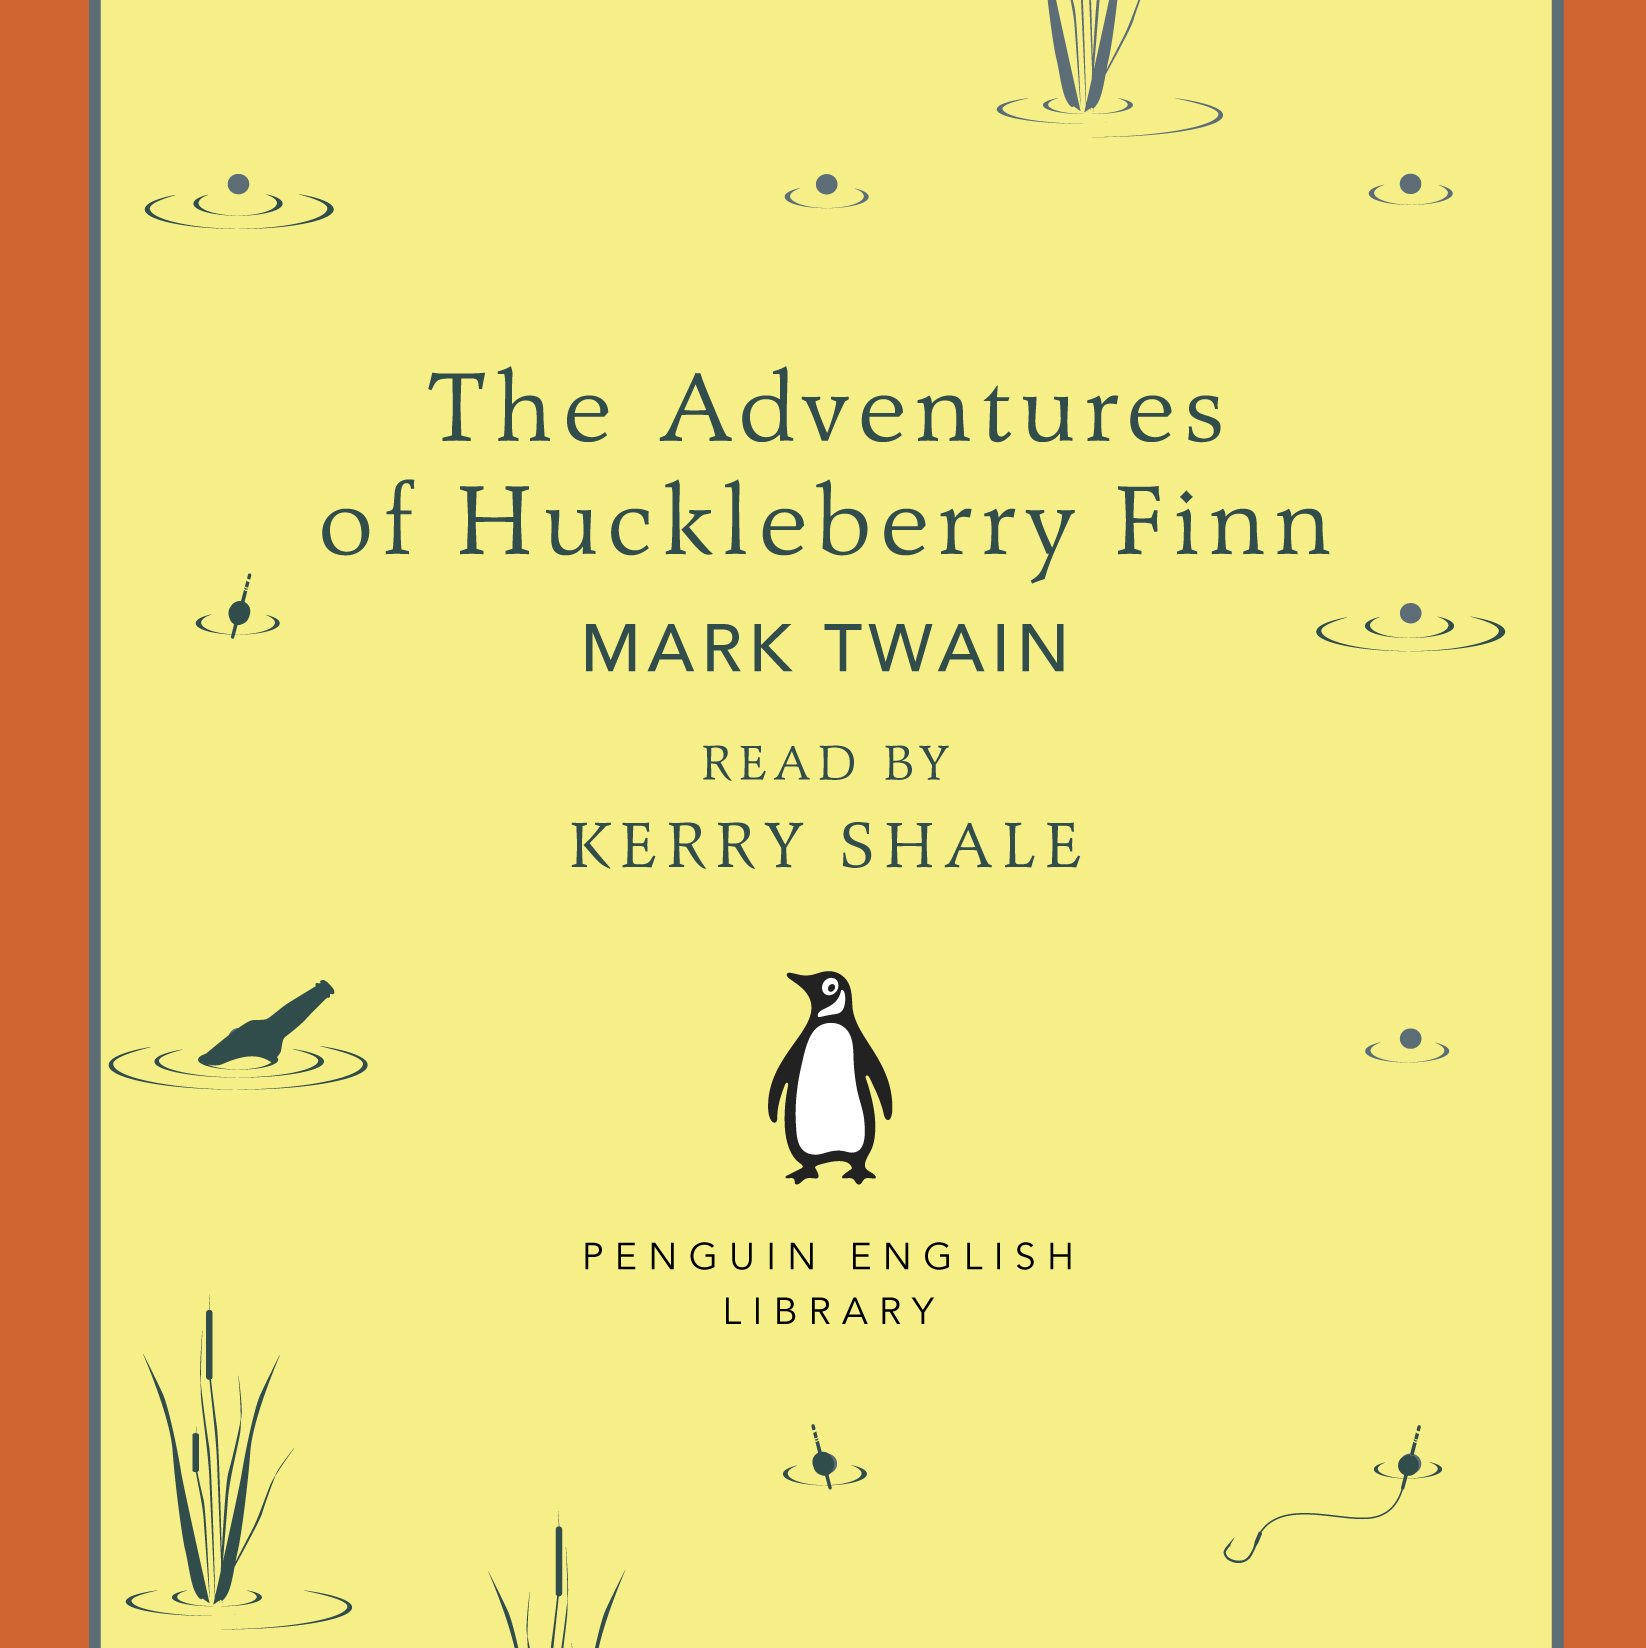 a look at the superstitions in huckleberry finn by mark twain Transcript of superstitions - huckleberry finn superstitions stated in the next few chapters hair ball bad luck good luck huckleberry finn - mark twain mrs.